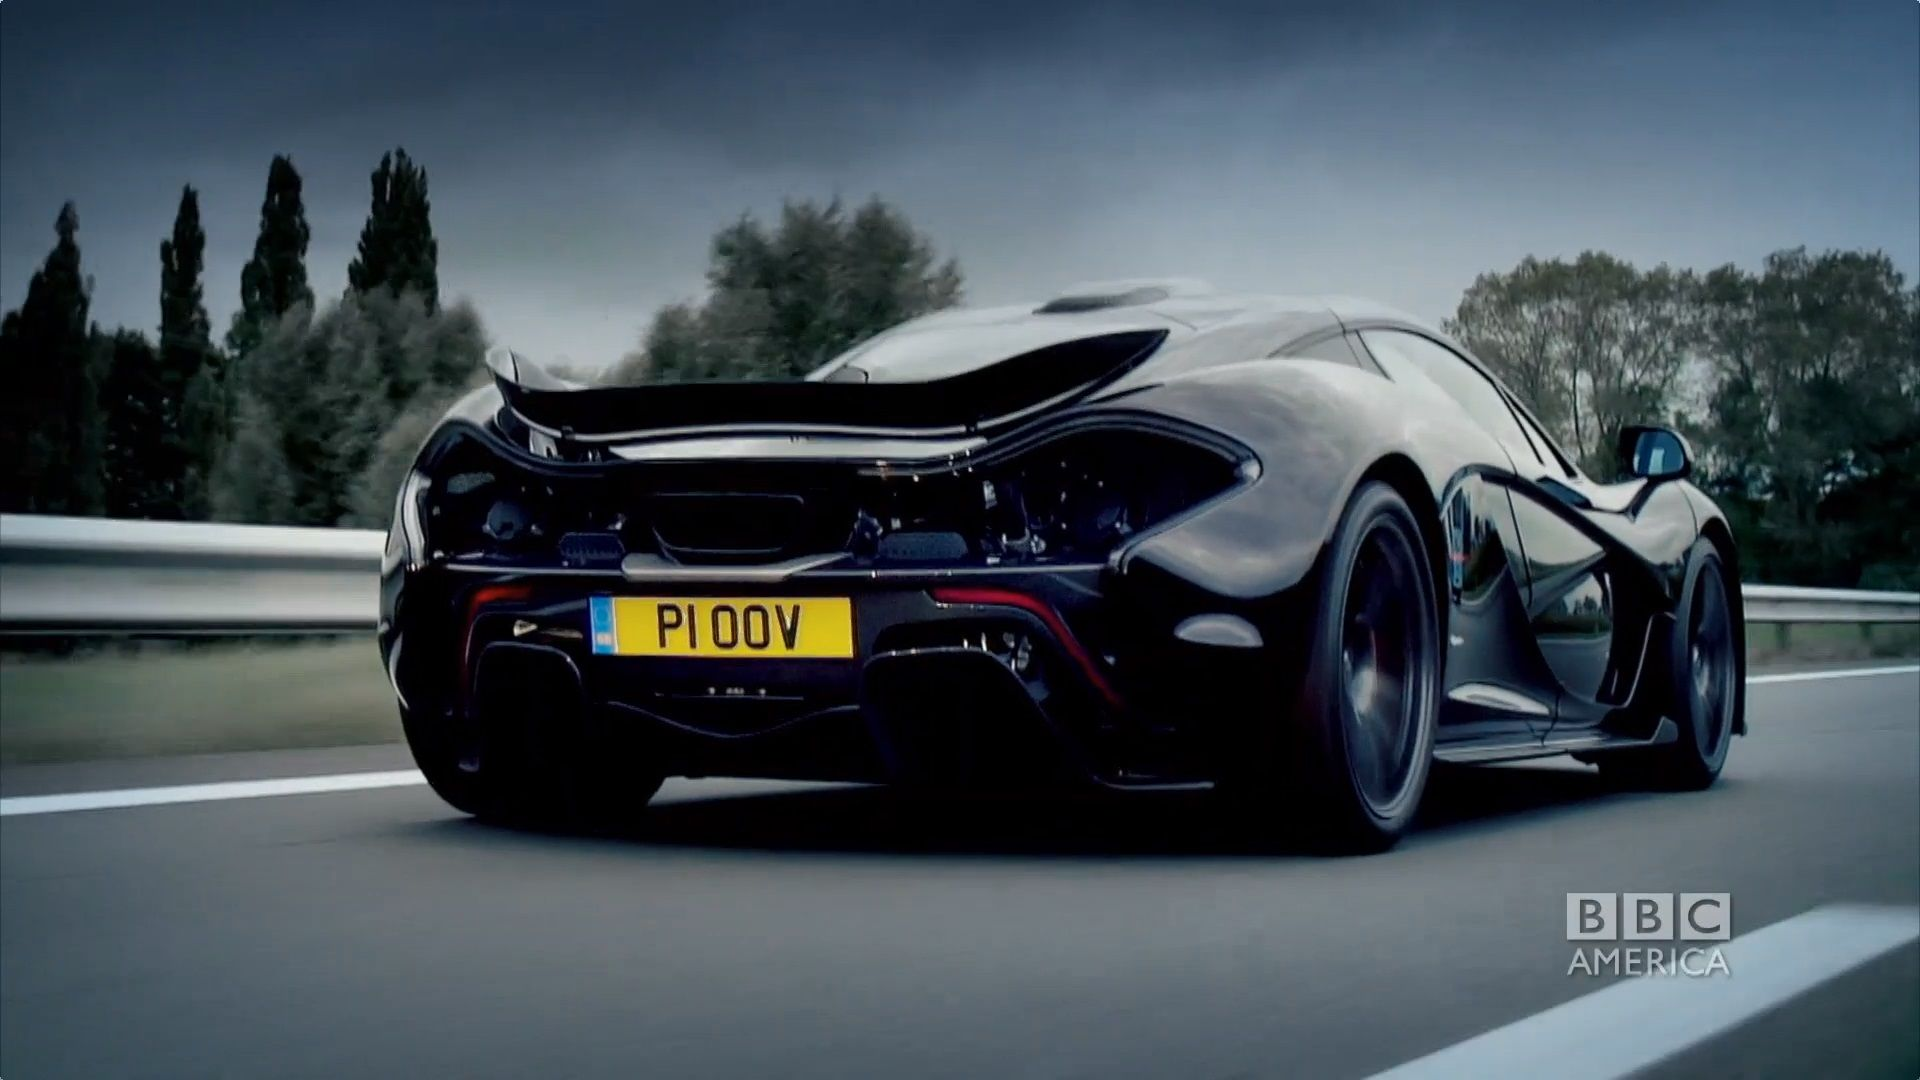 Mclaren P1 Top Gear Bbc Top Gear Mclaren Top Gear Uk